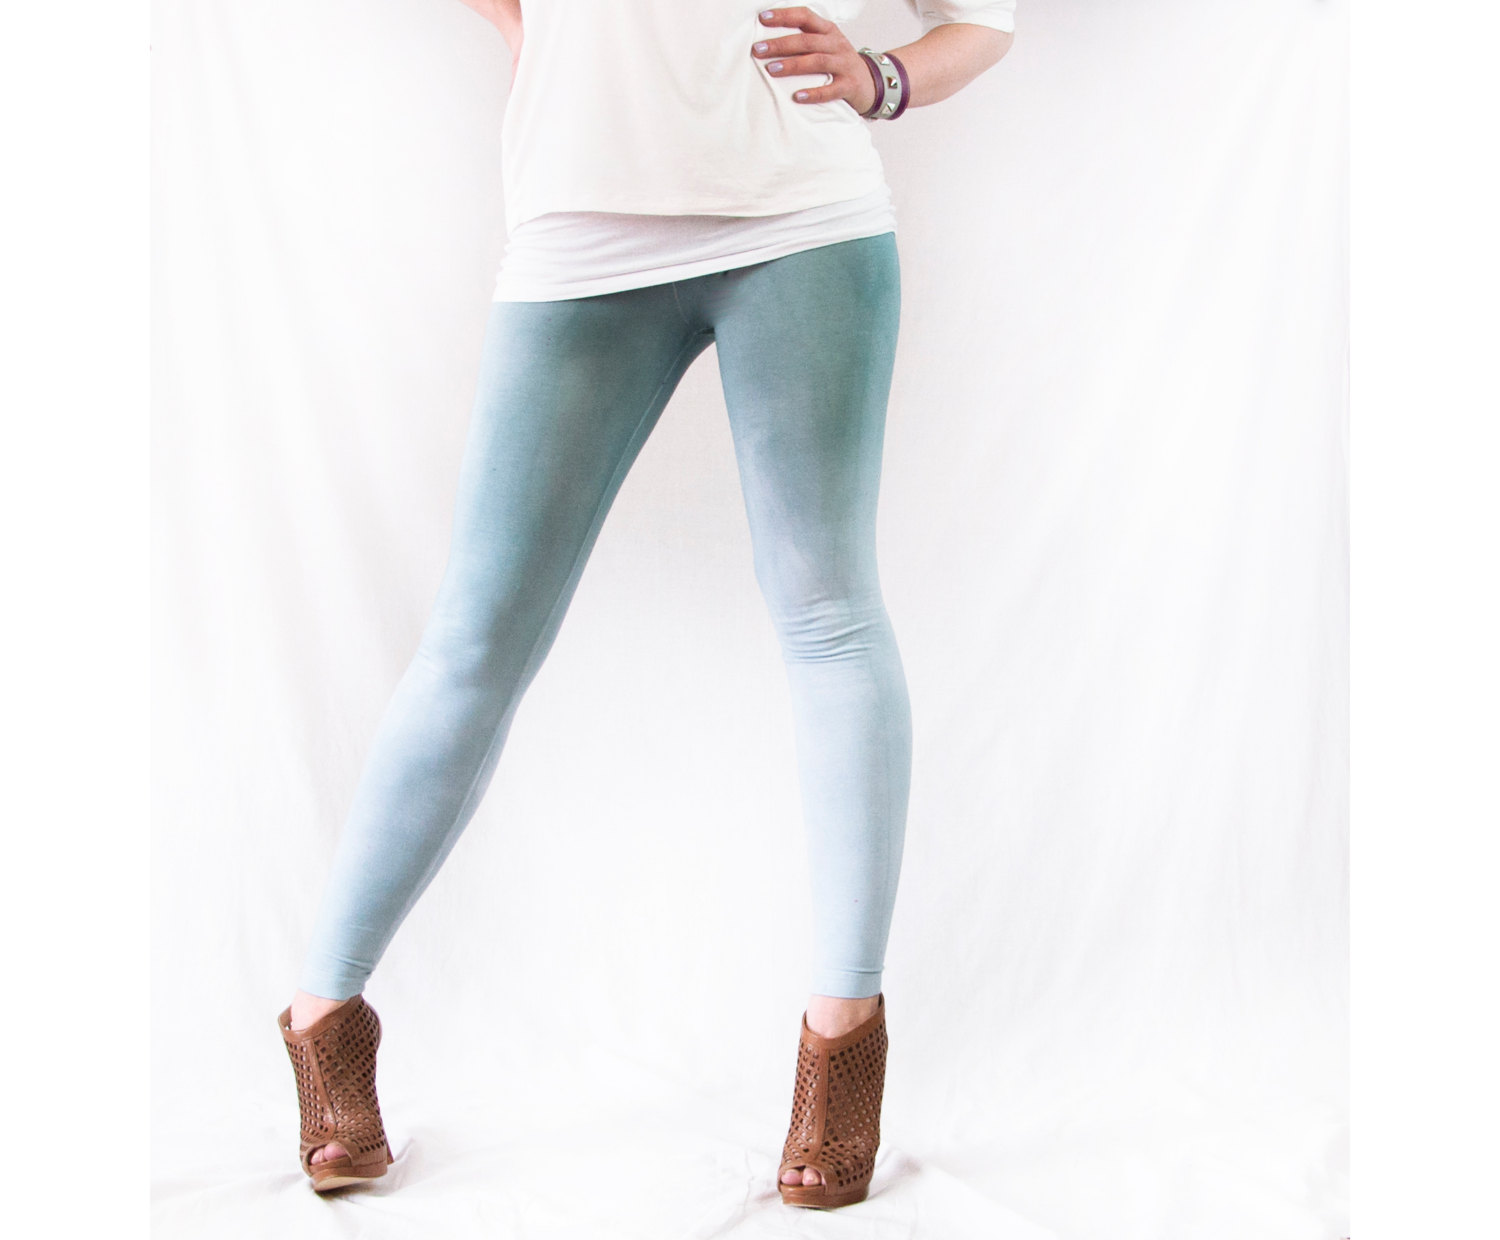 SALE Grey Leggings Womens Cotton Yoga Gray Ombre Tights SMALL Crossfit Workout Pants Hand Dyed Dip Dye